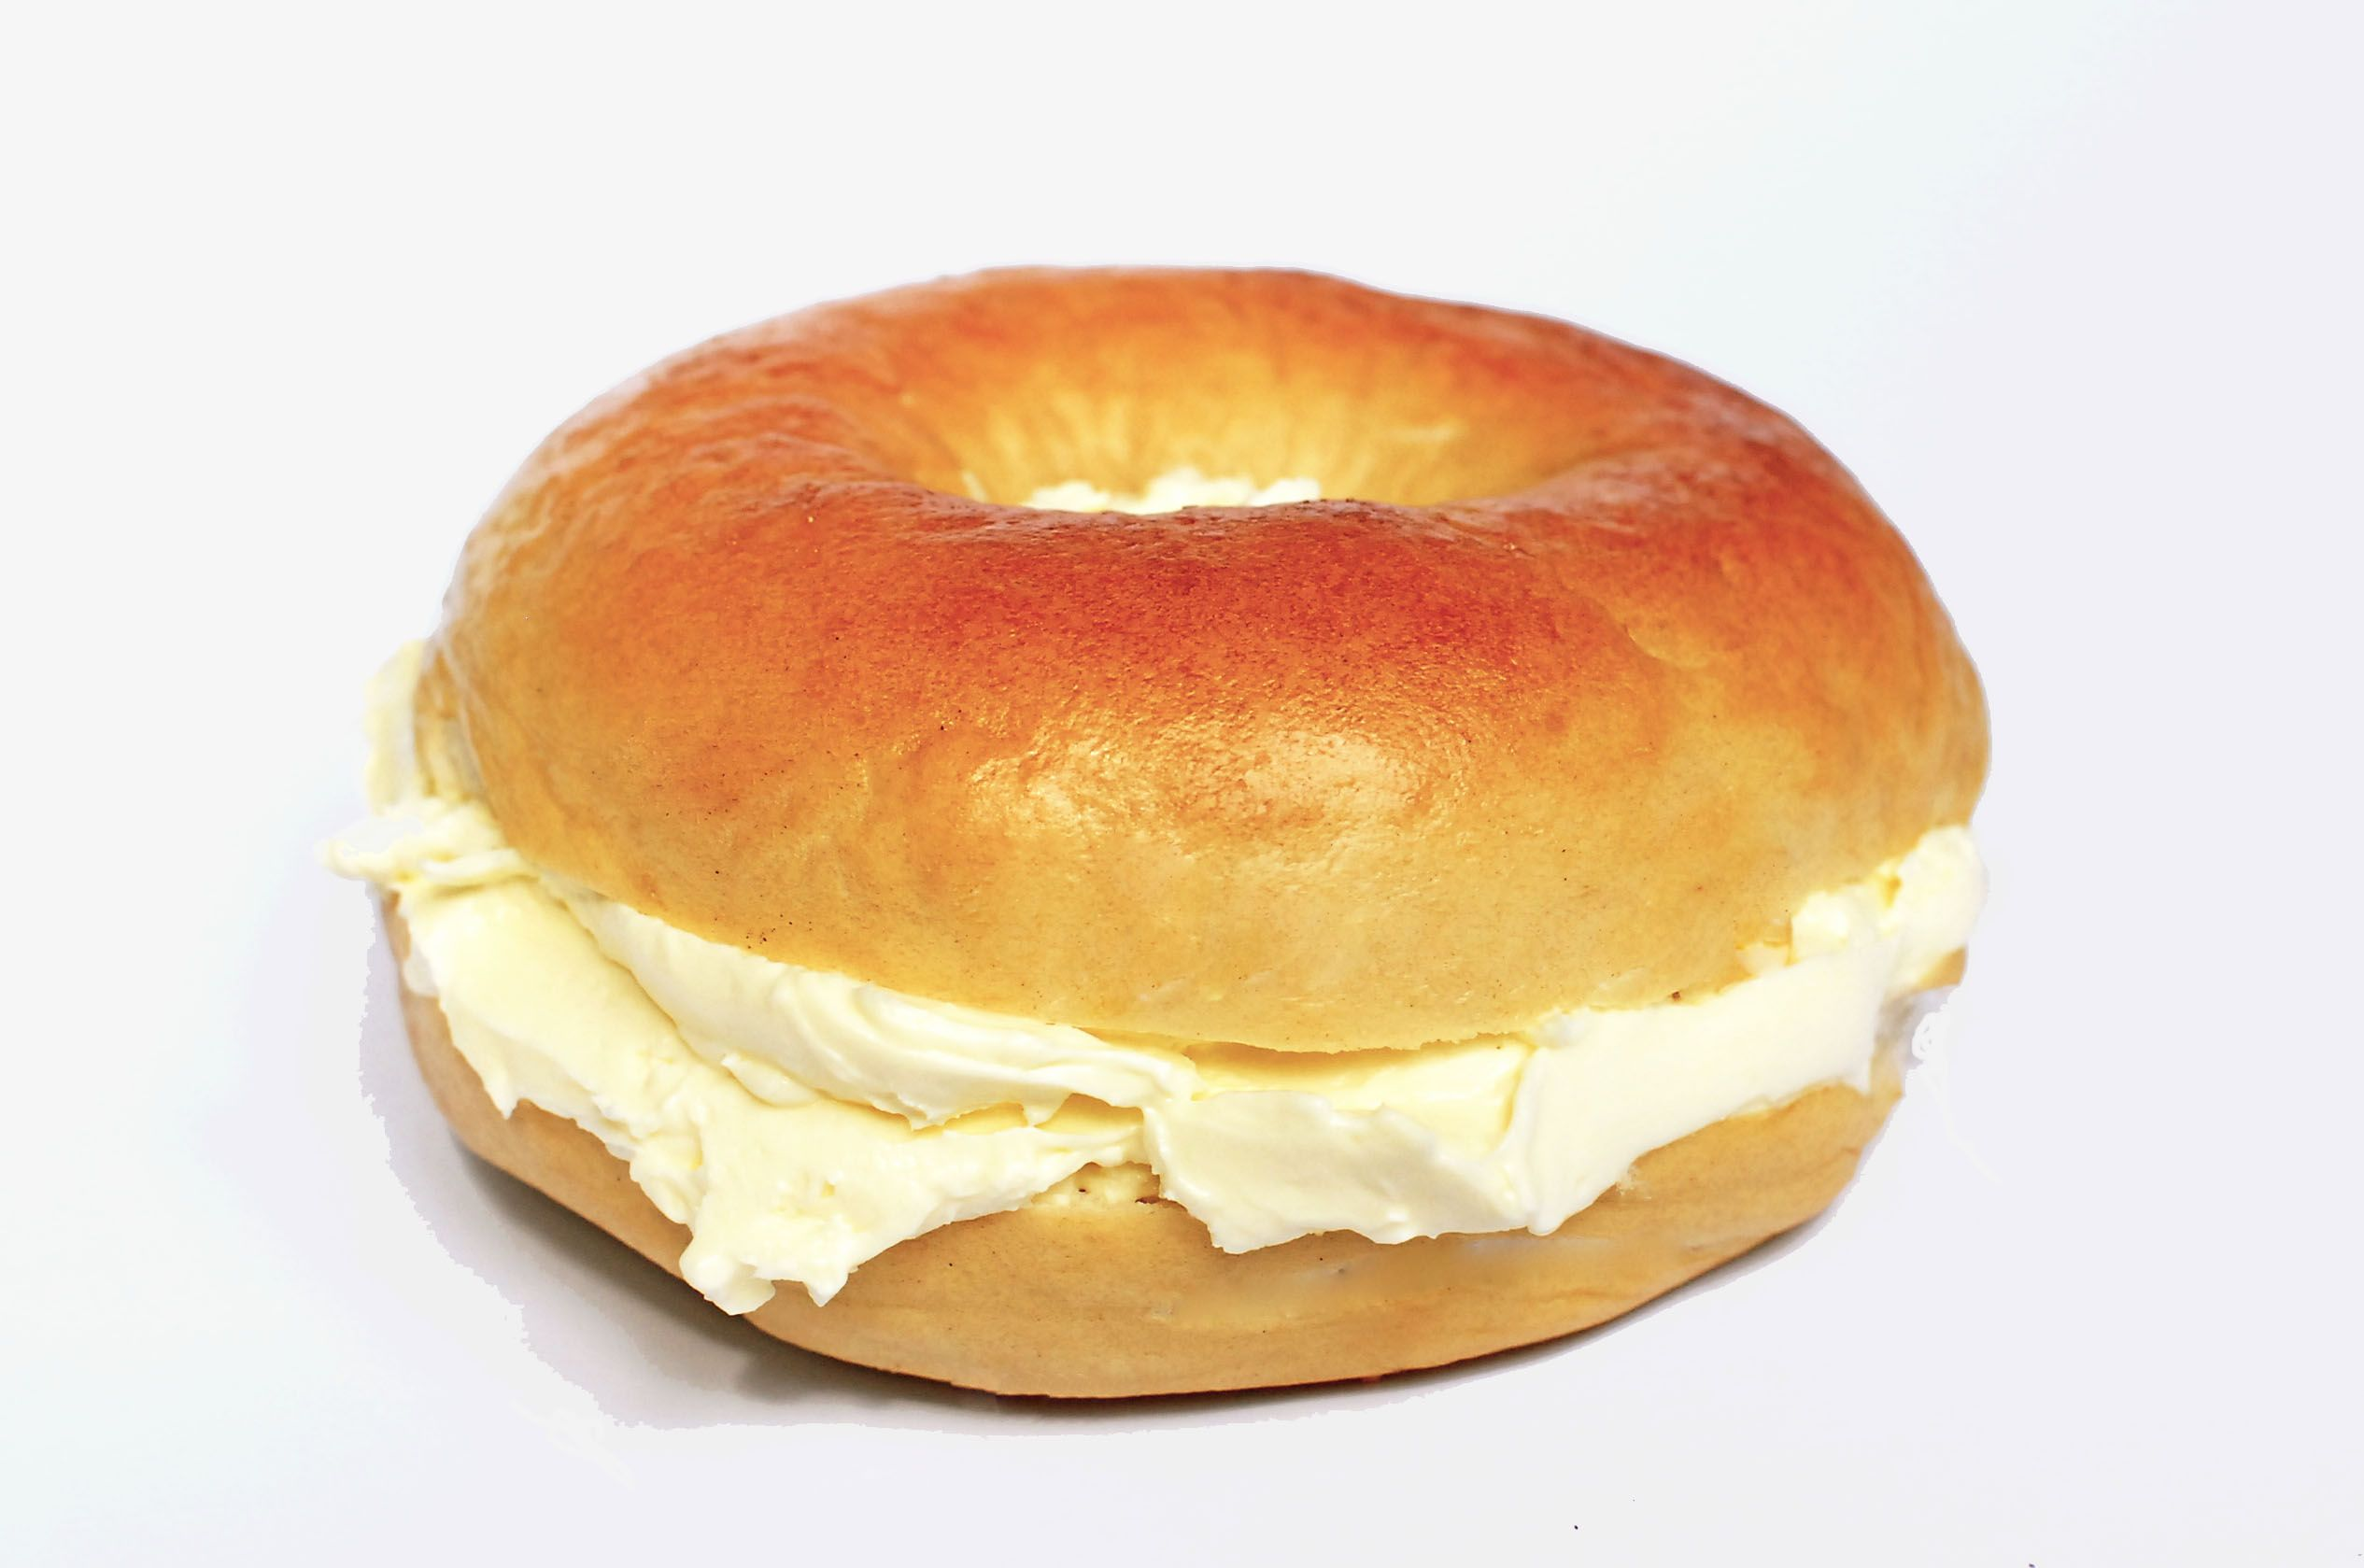 bagel with cream cheese is a good choice for a healthy breakfast